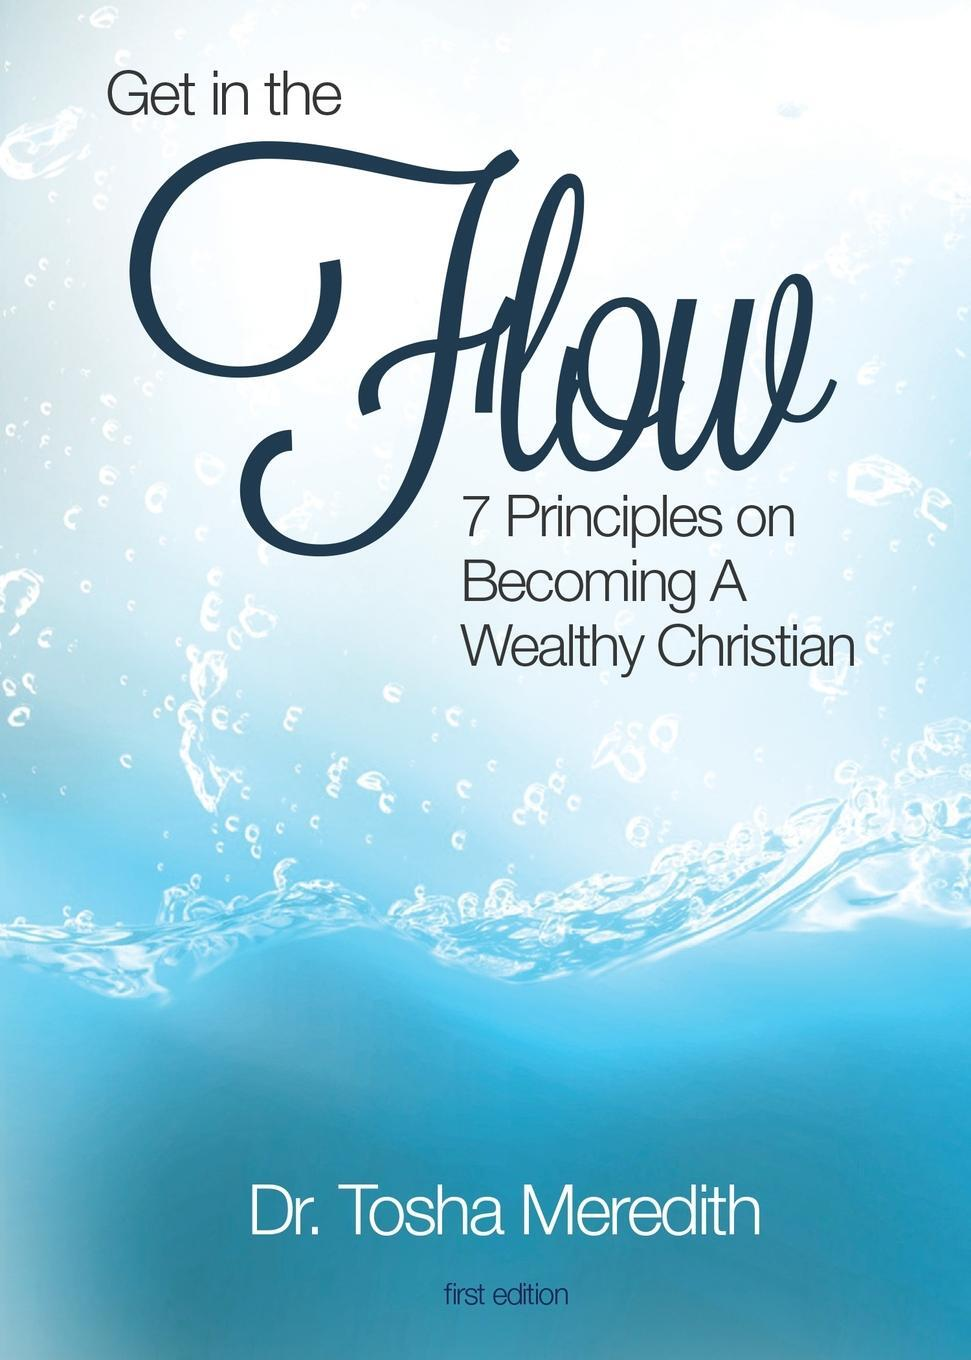 Get in the Flow. 7 Principles on Becoming a Wealthy Christian